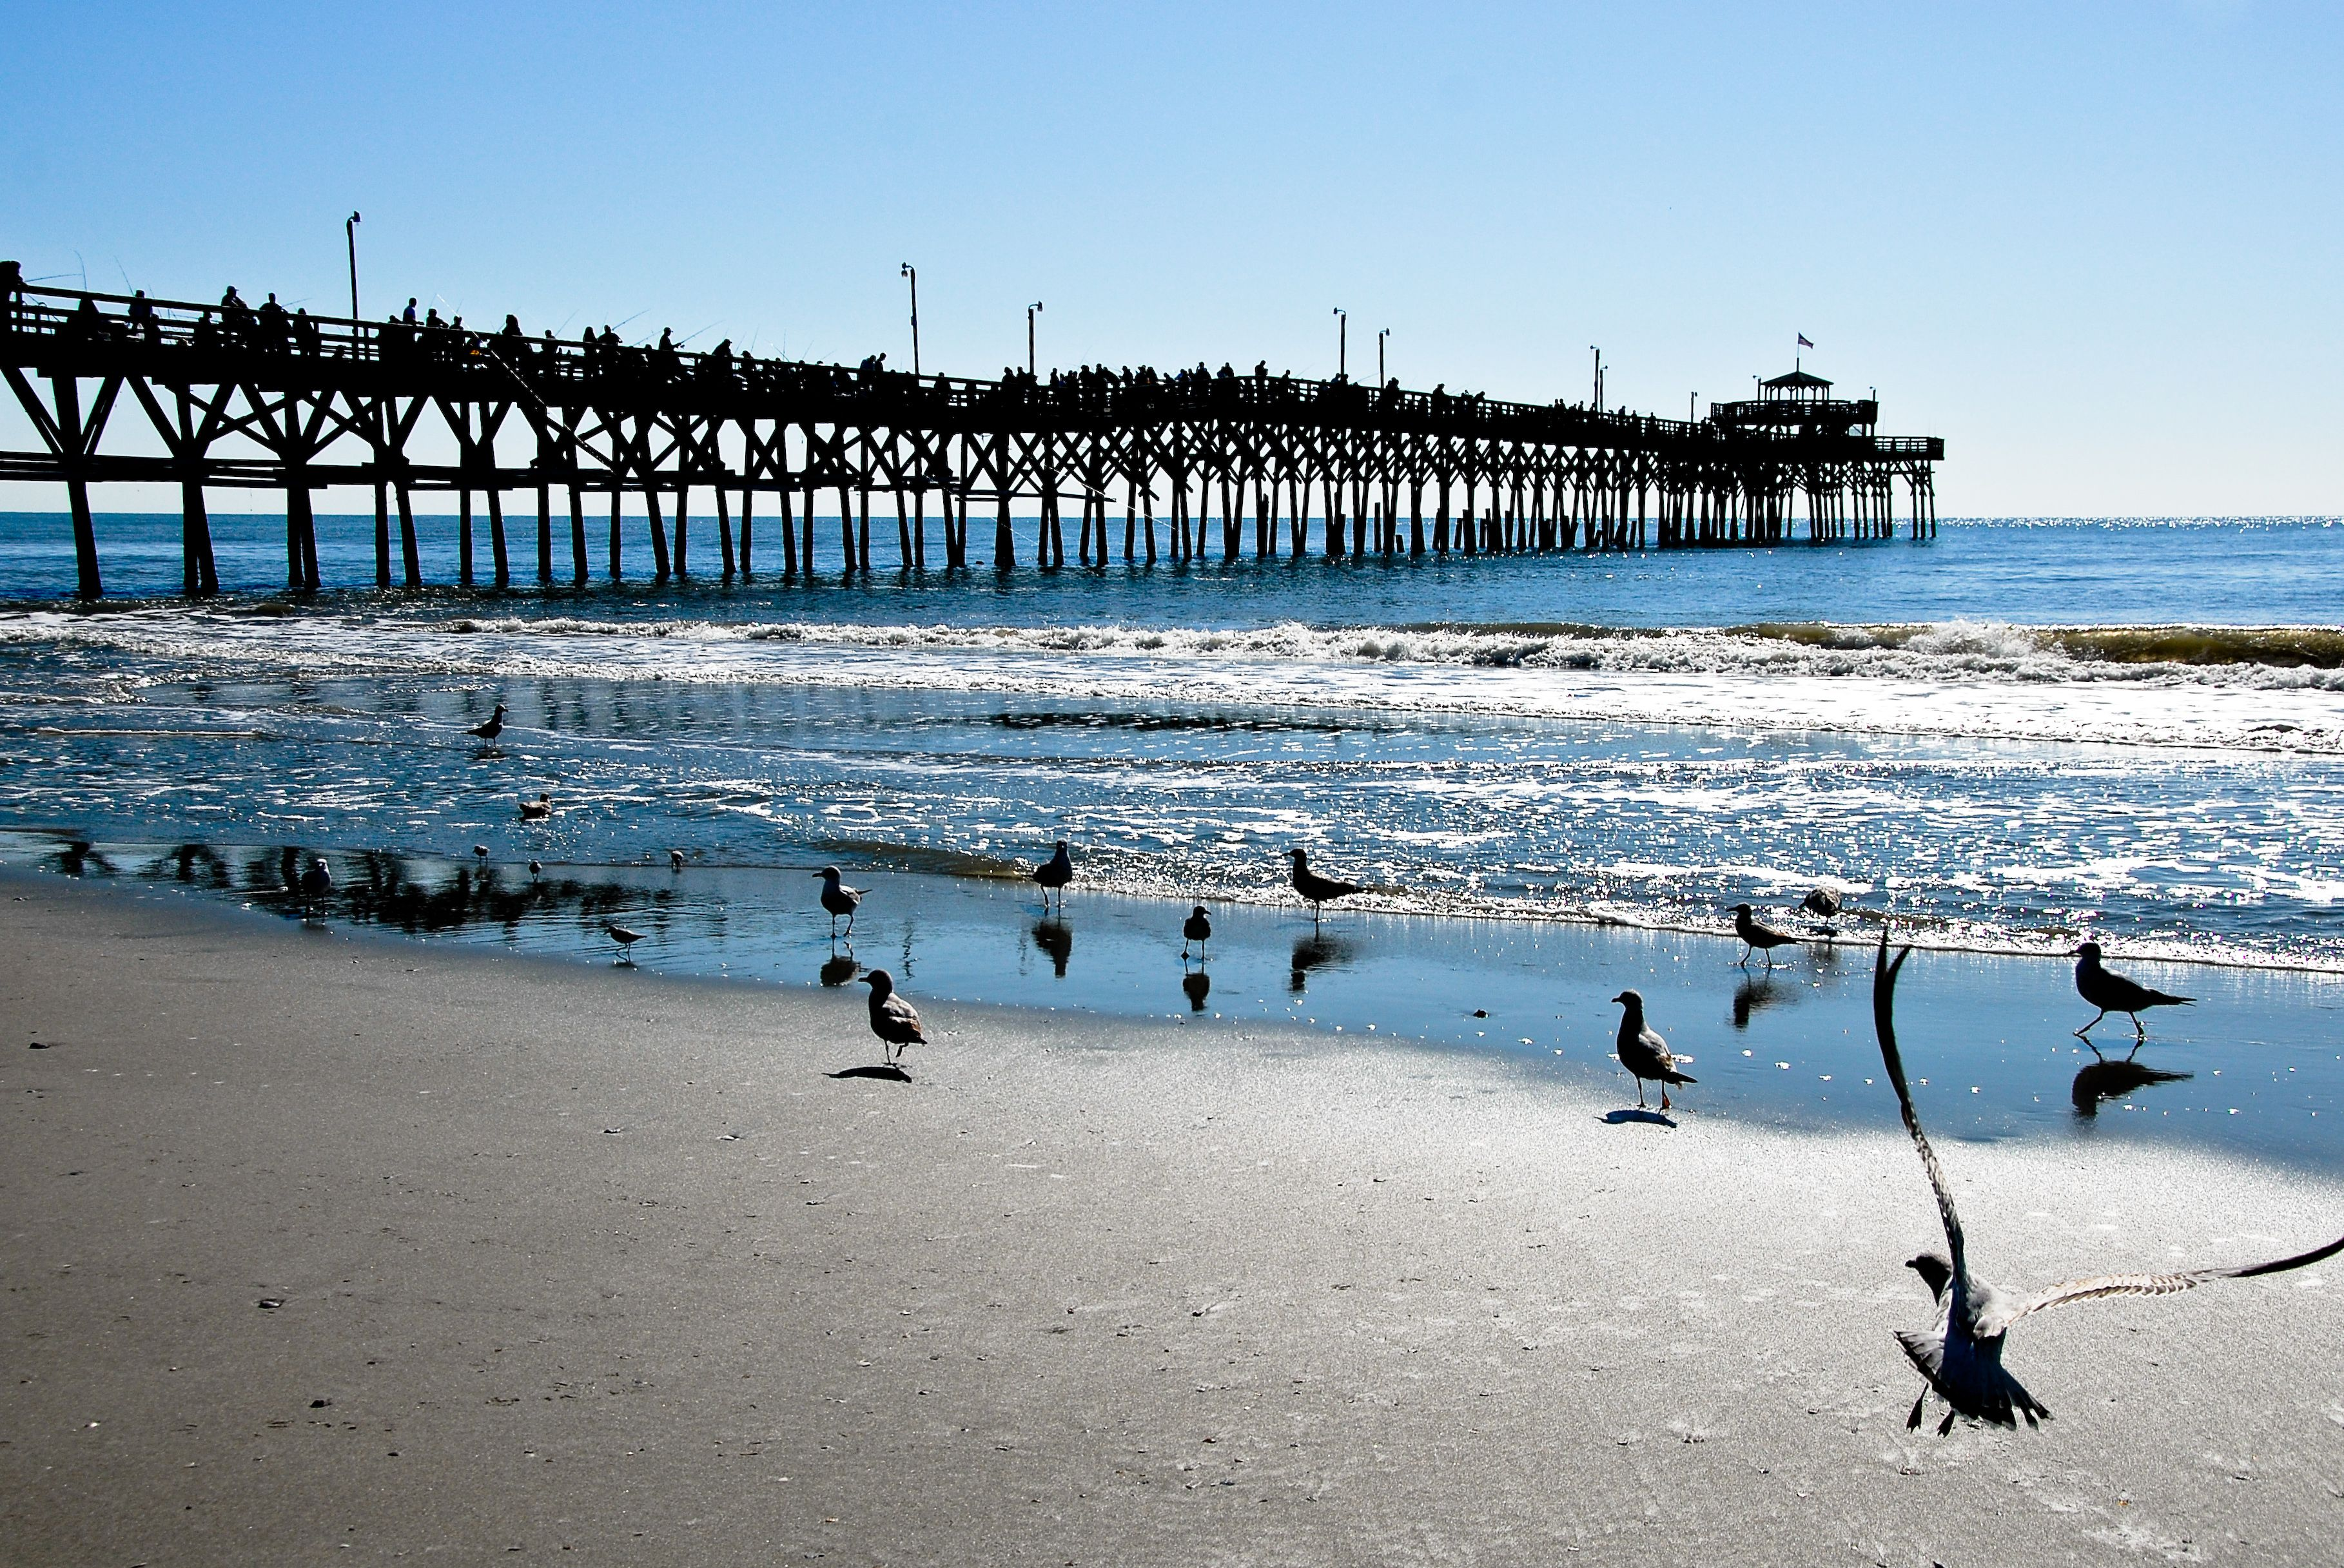 A Beautiful Flock Of Seagulls At The Cherry Grove Pier In North Myrtle Beach South